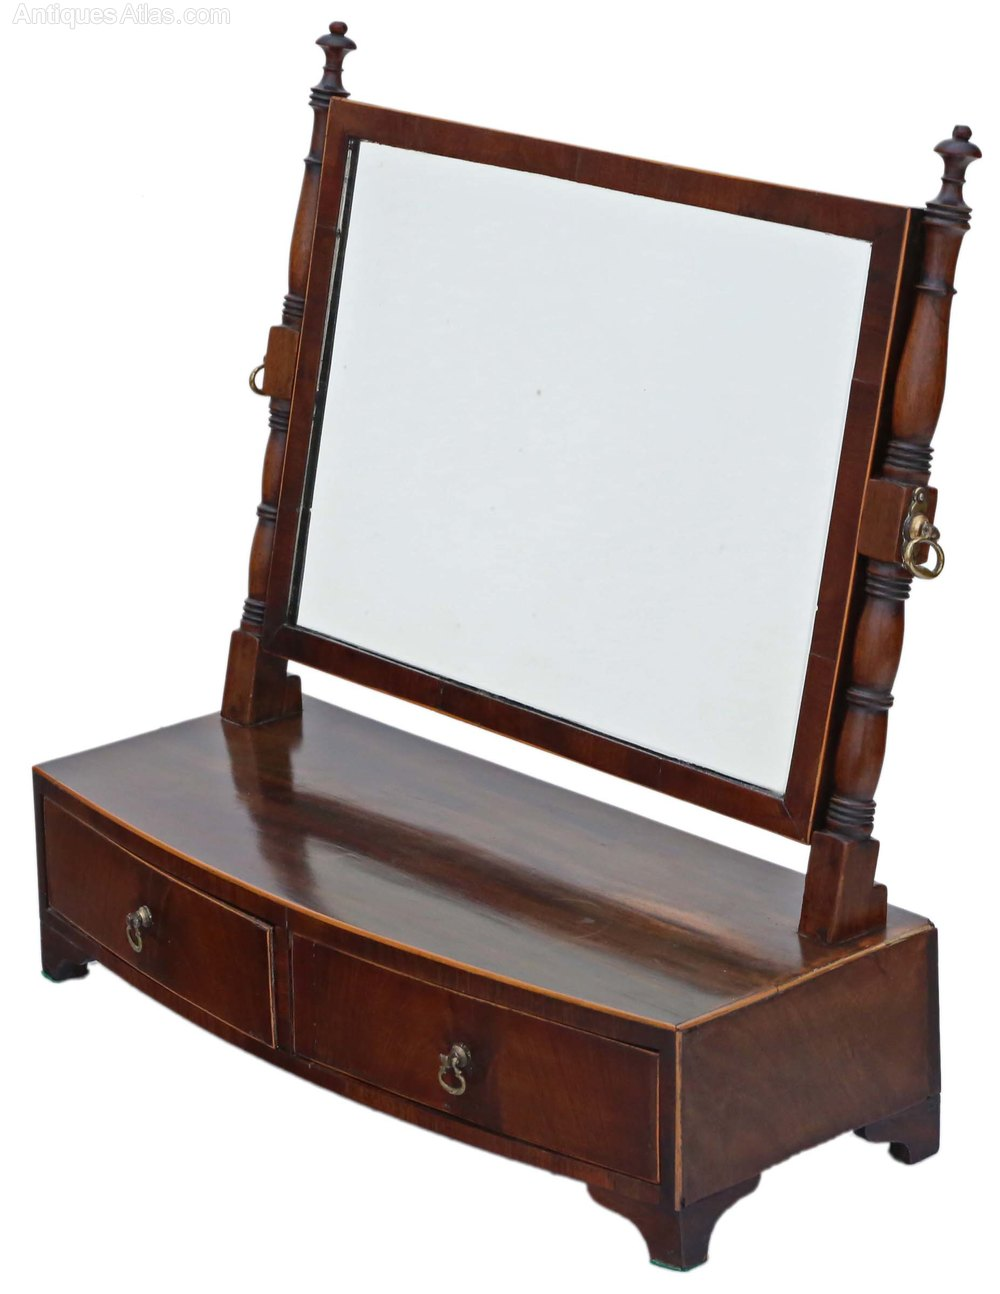 Antiques atlas georgian mahogany dressing table swing mirror